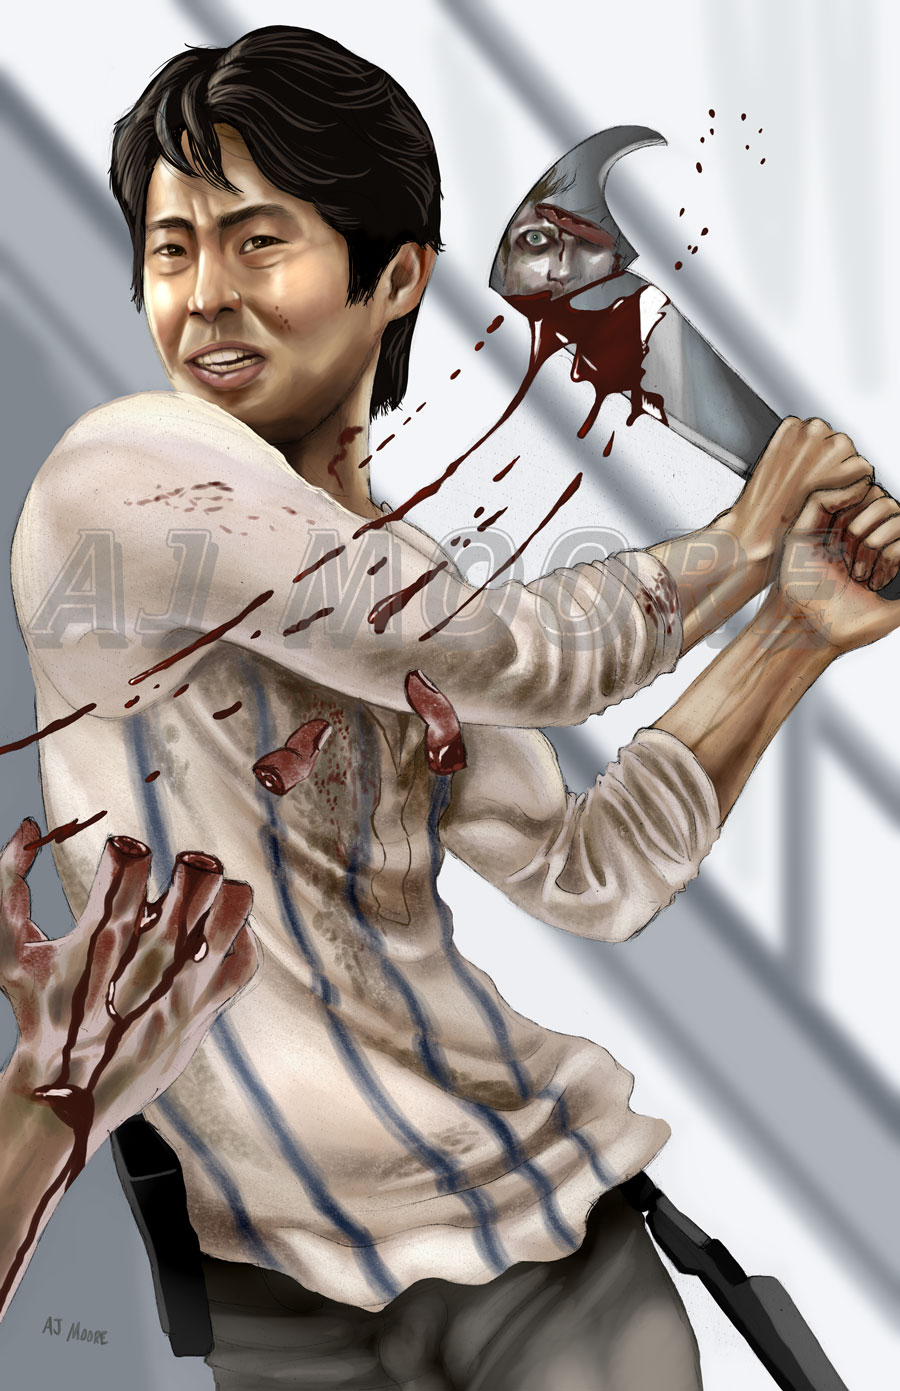 Glenn The Walking Dead: portrayed by Steven Yeun